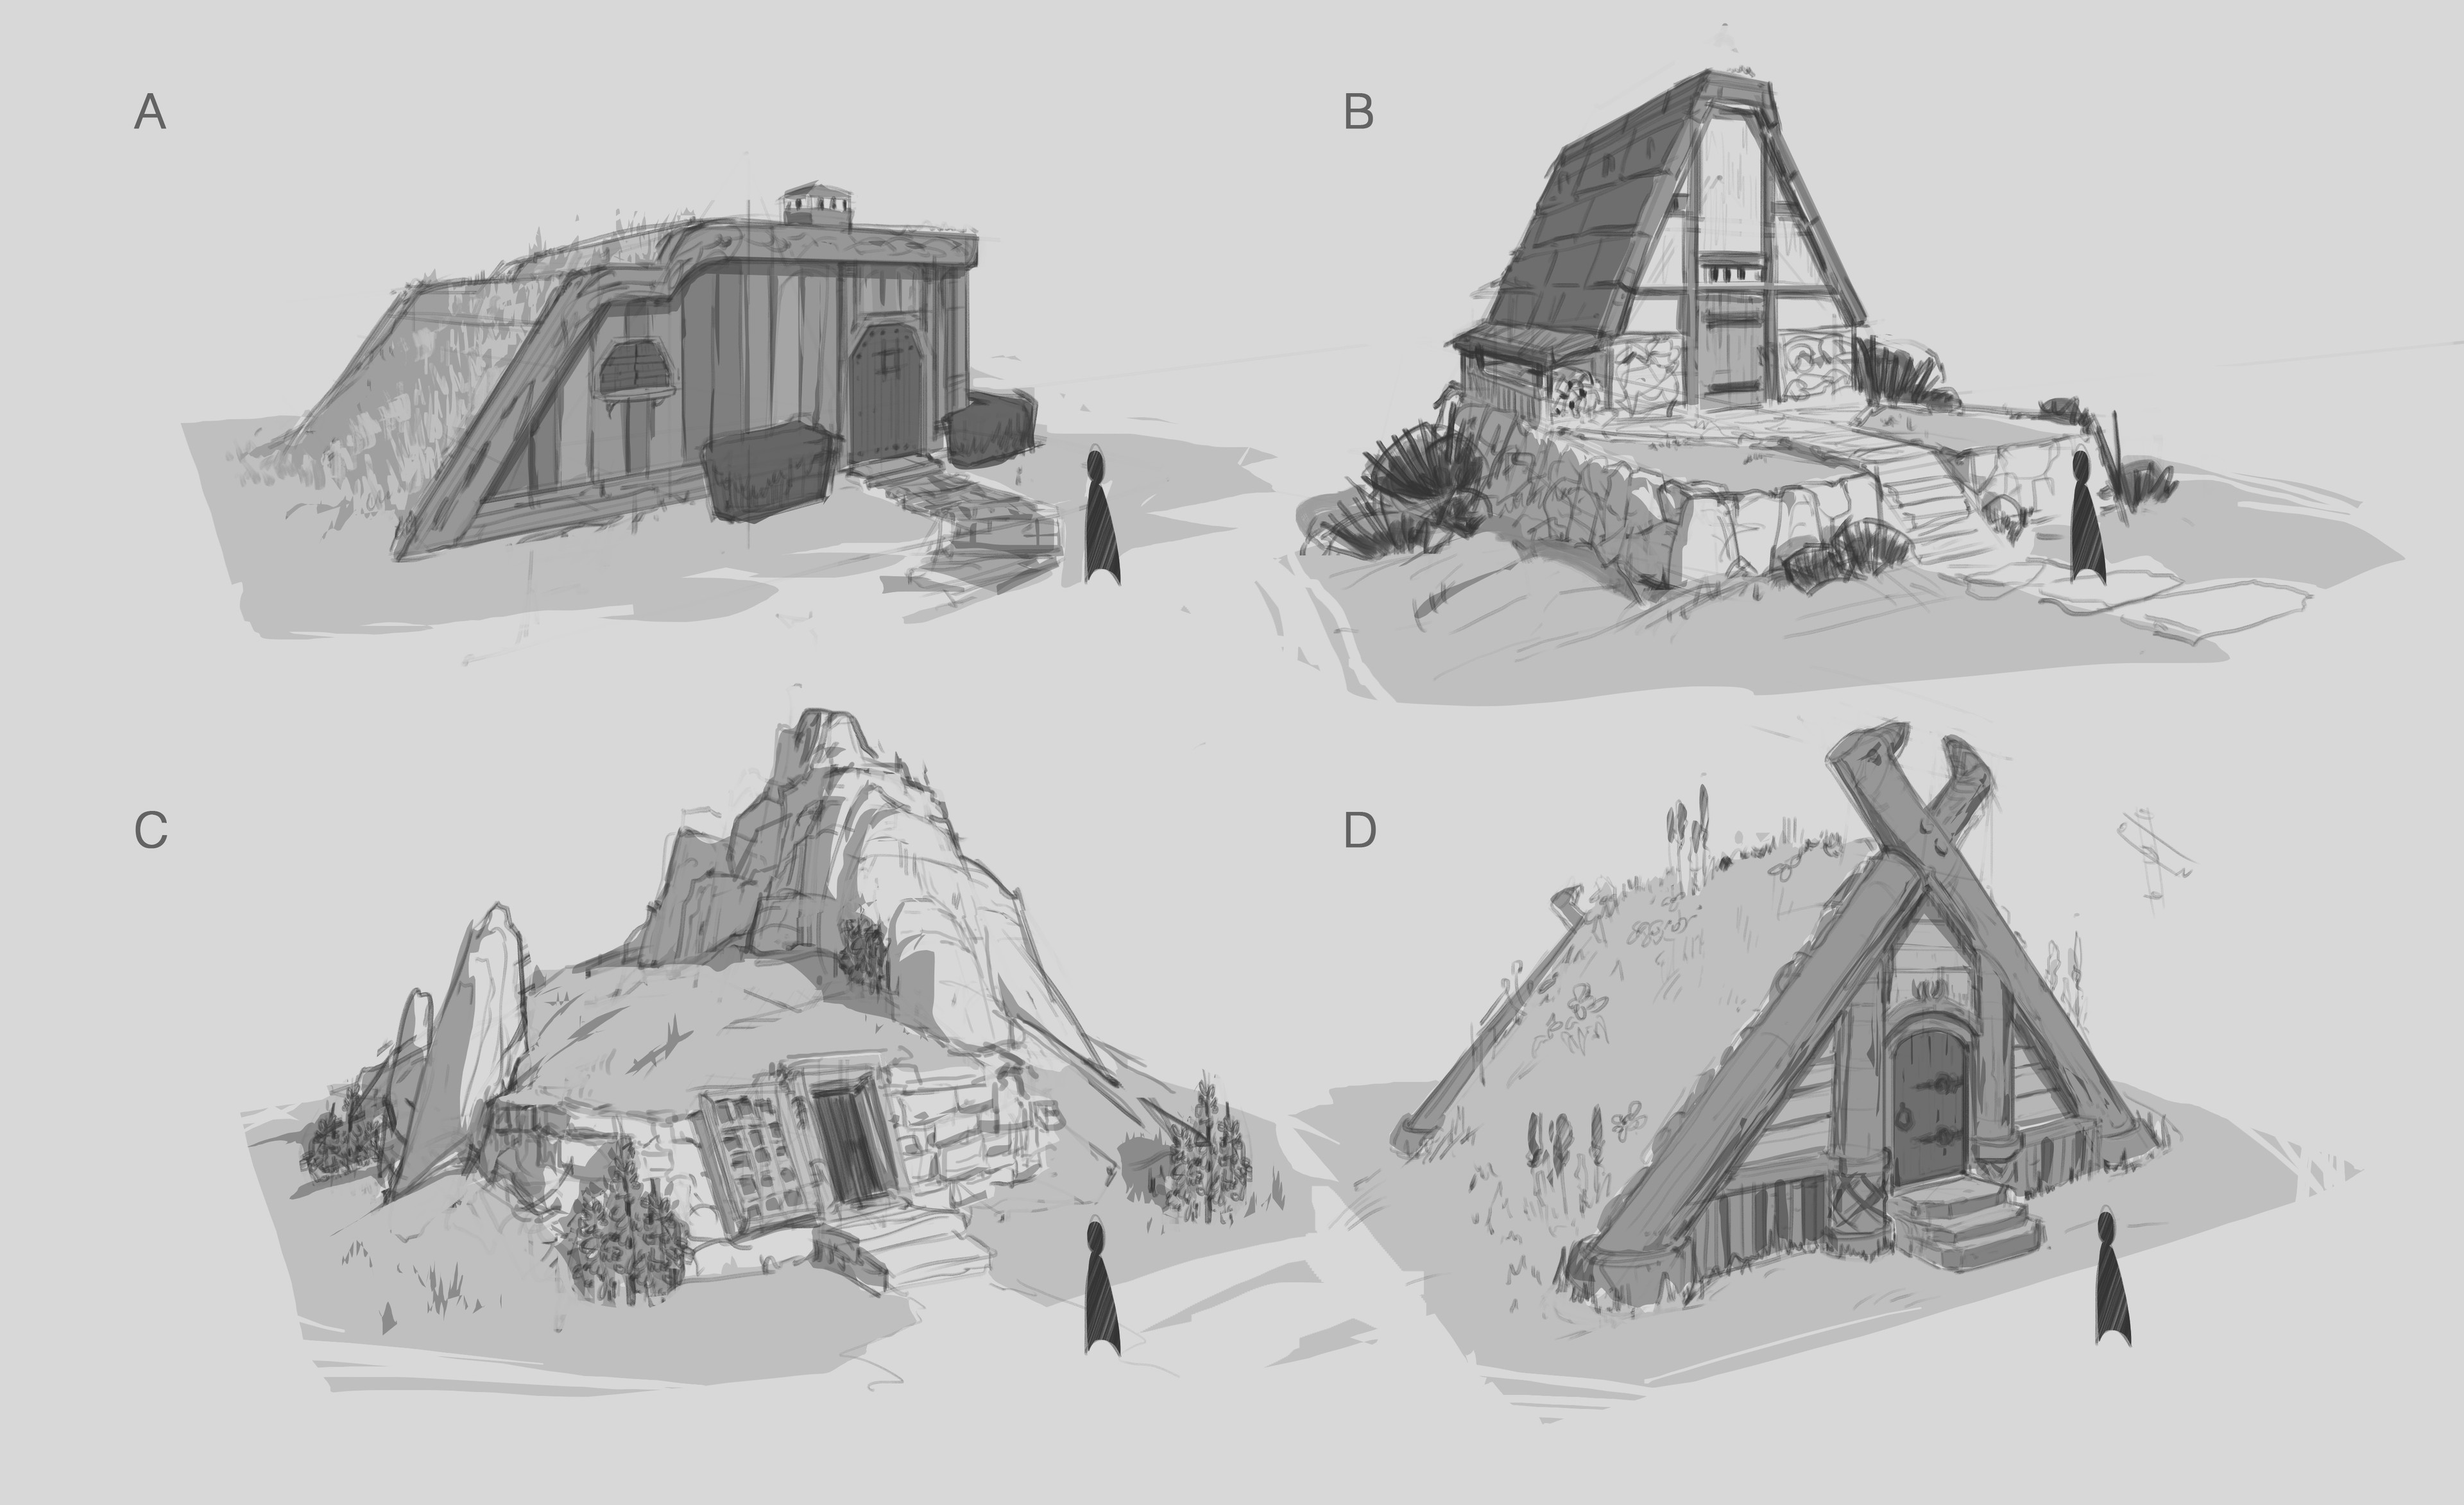 Early Sketches exploring architecture styles.